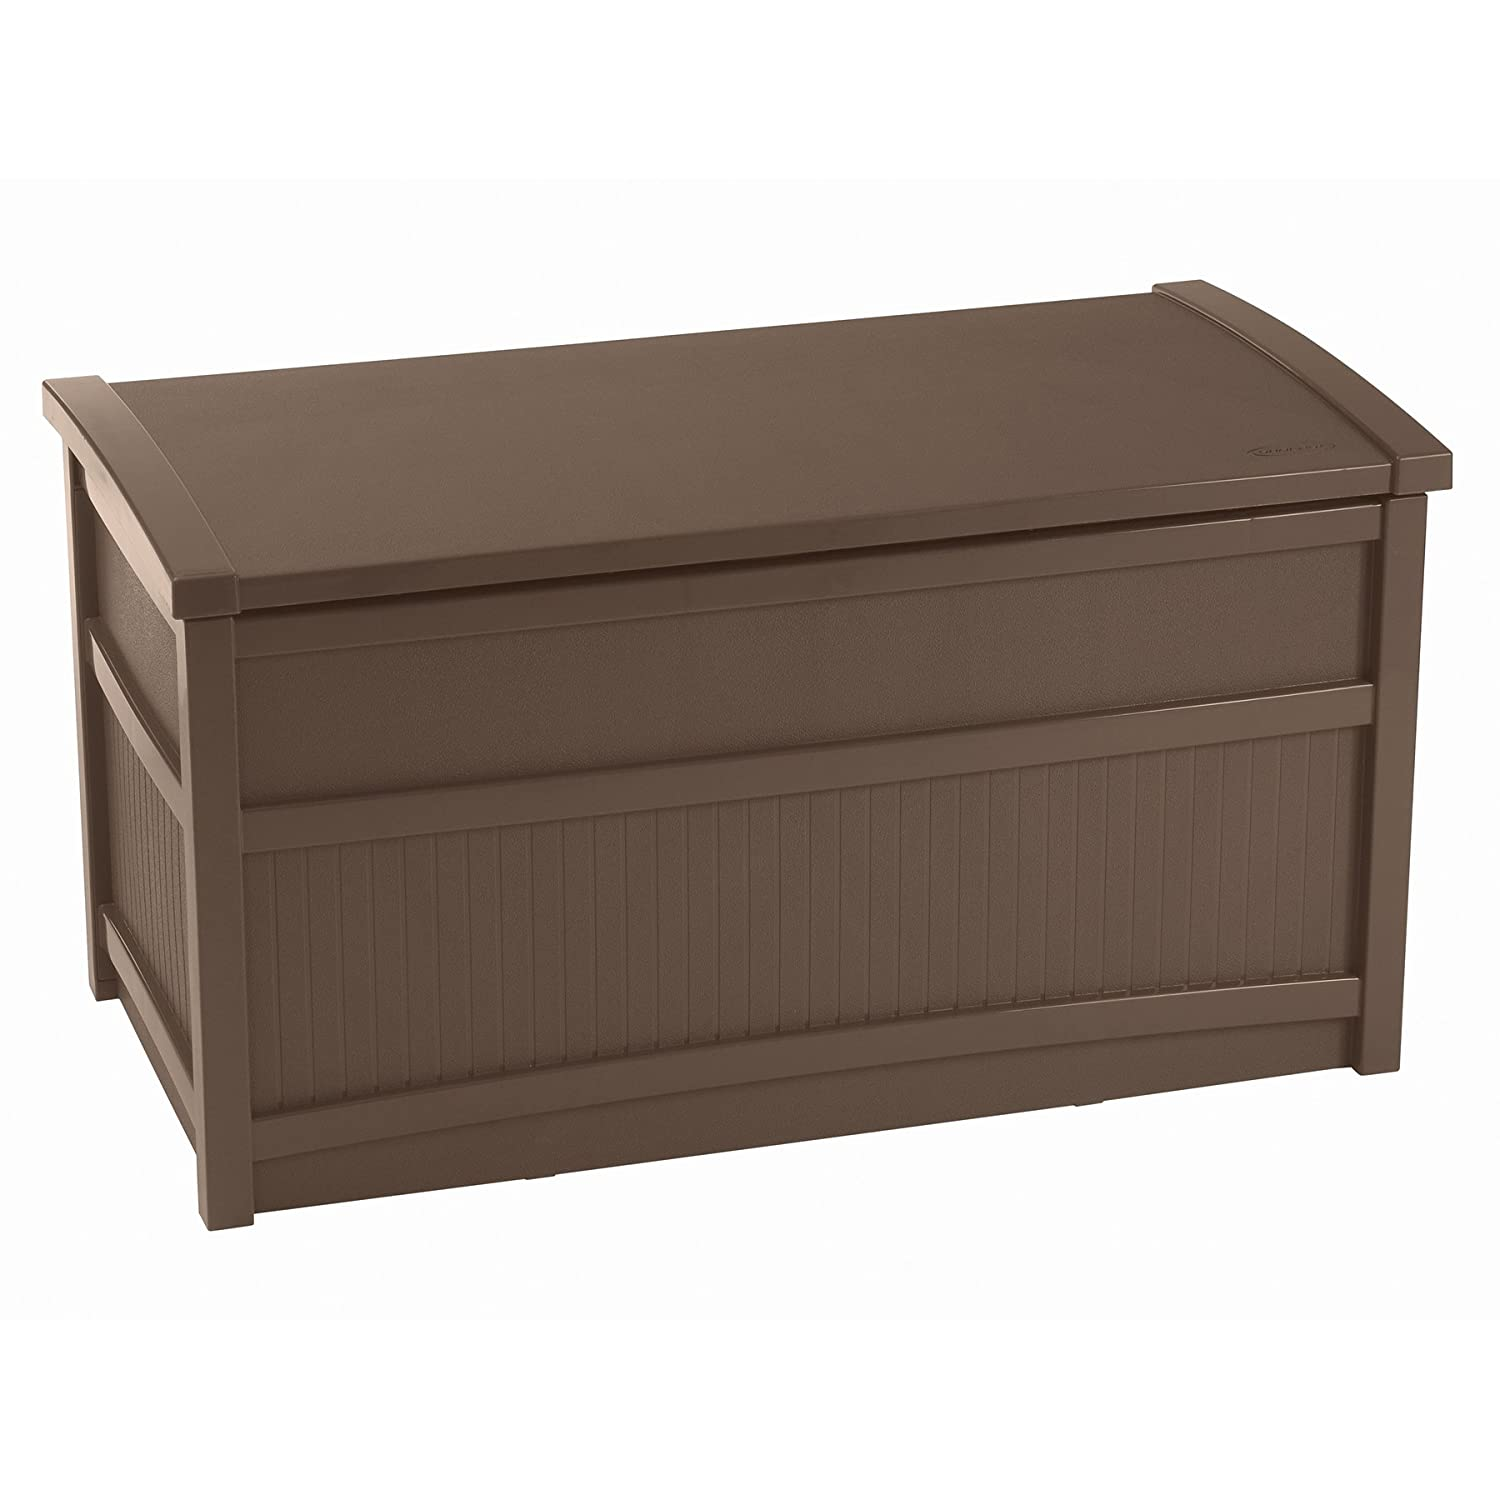 Genial Amazon.com : Suncast DB5000B Deck Box, 50 Gallon : Outdoor Storage Benches  : Garden U0026 Outdoor